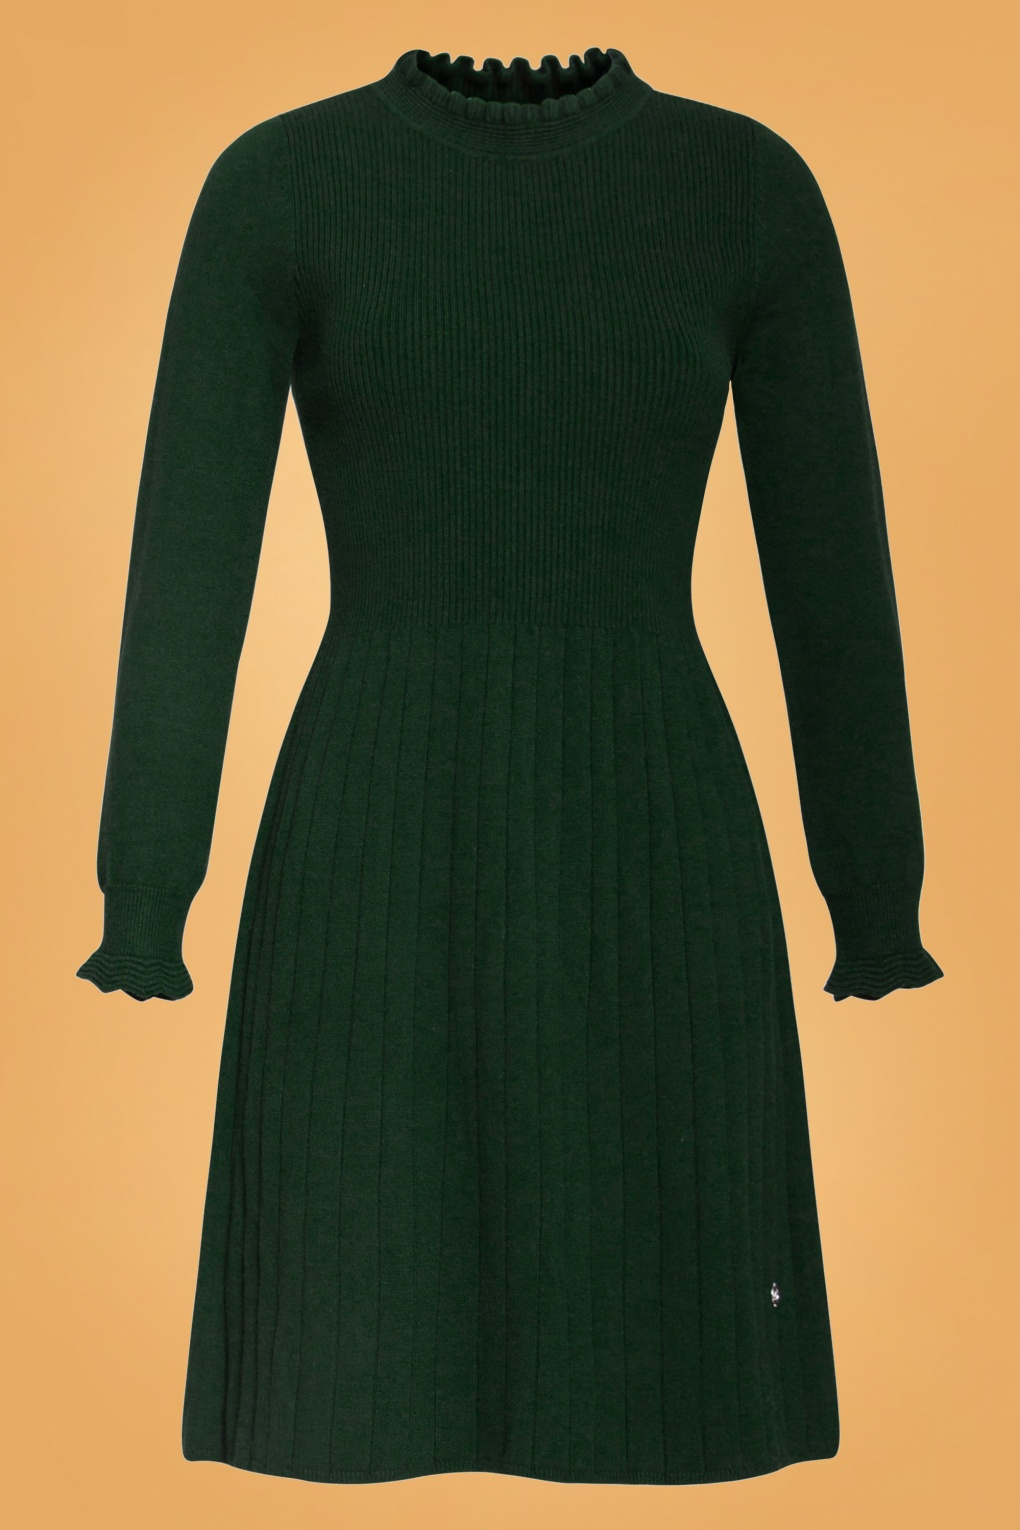 60s Dresses | 1960s Dresses Mod, Mini, Hippie 60s Kyala Knitted Dress in Forest Green £82.65 AT vintagedancer.com